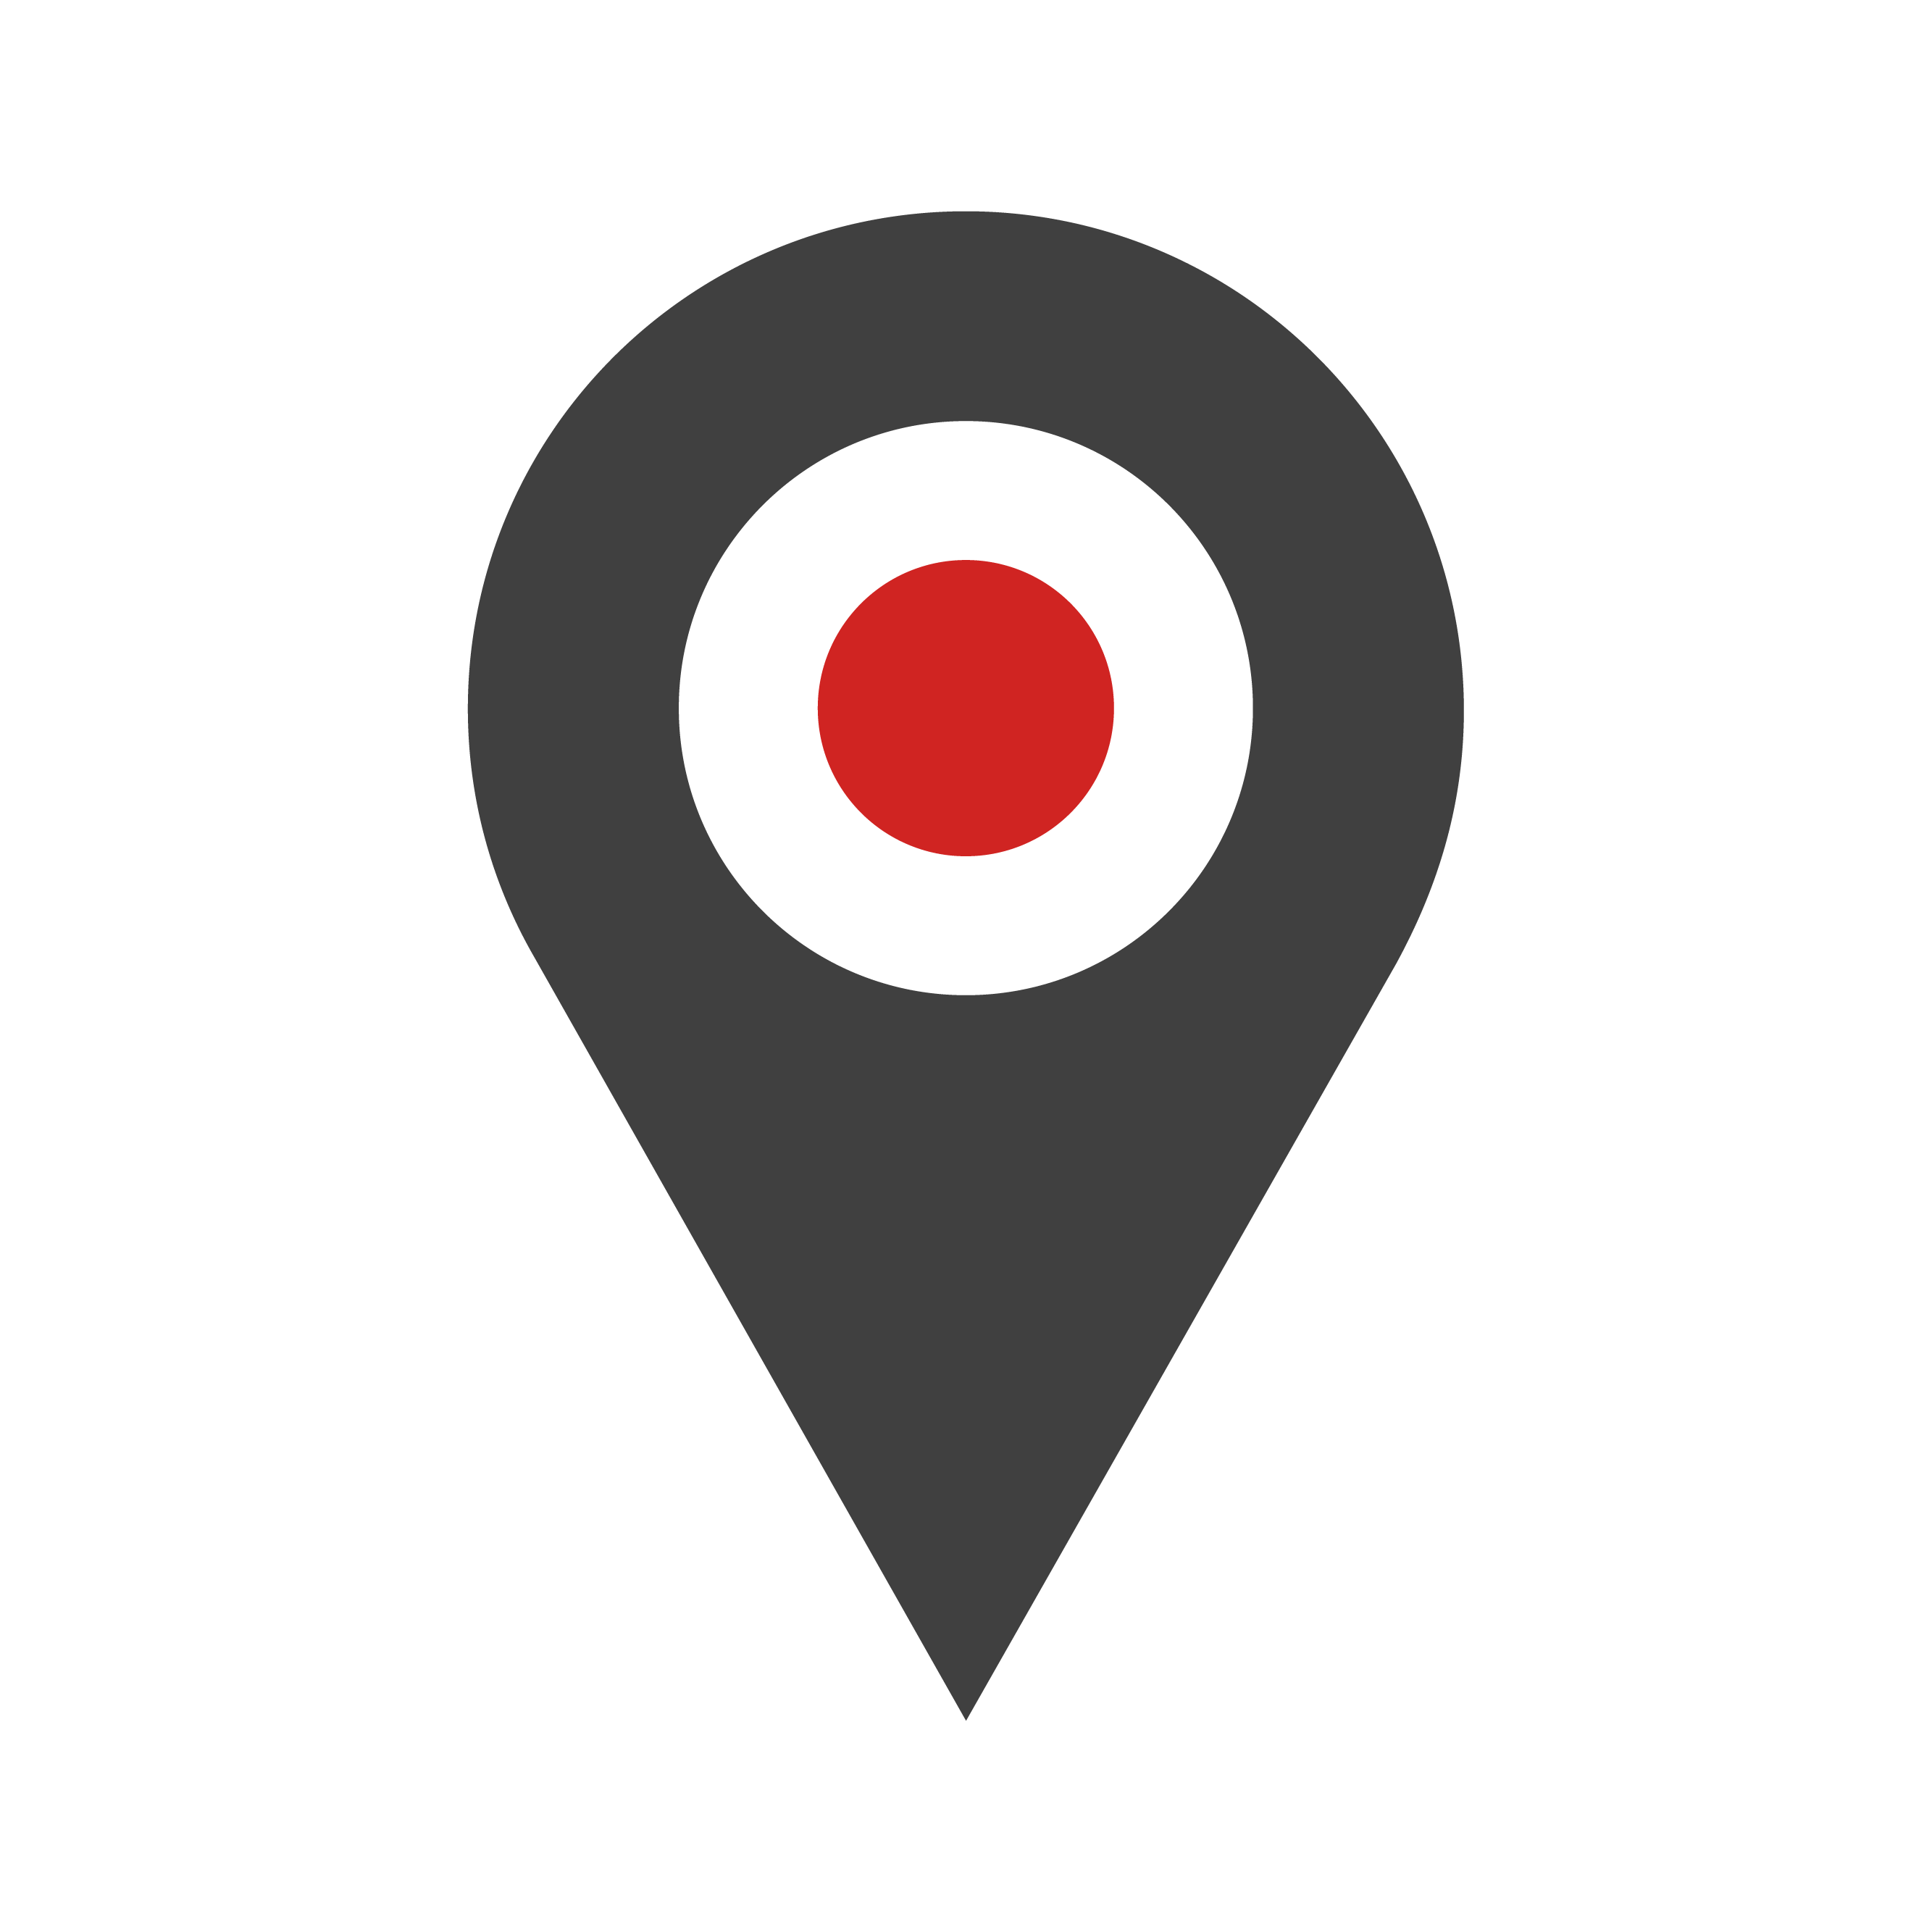 Icon for Geolocation